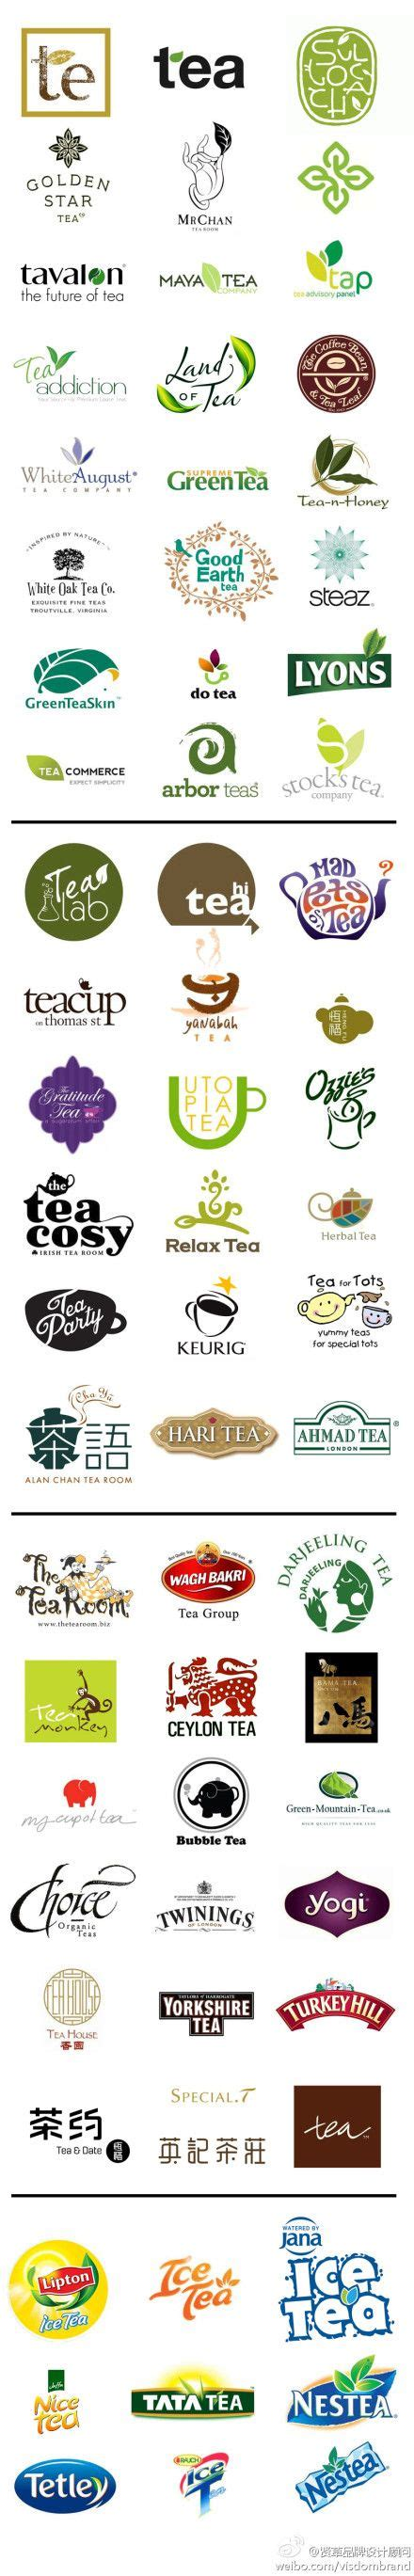 food and drink logos that start with e www pixshark com images galleries with a bite